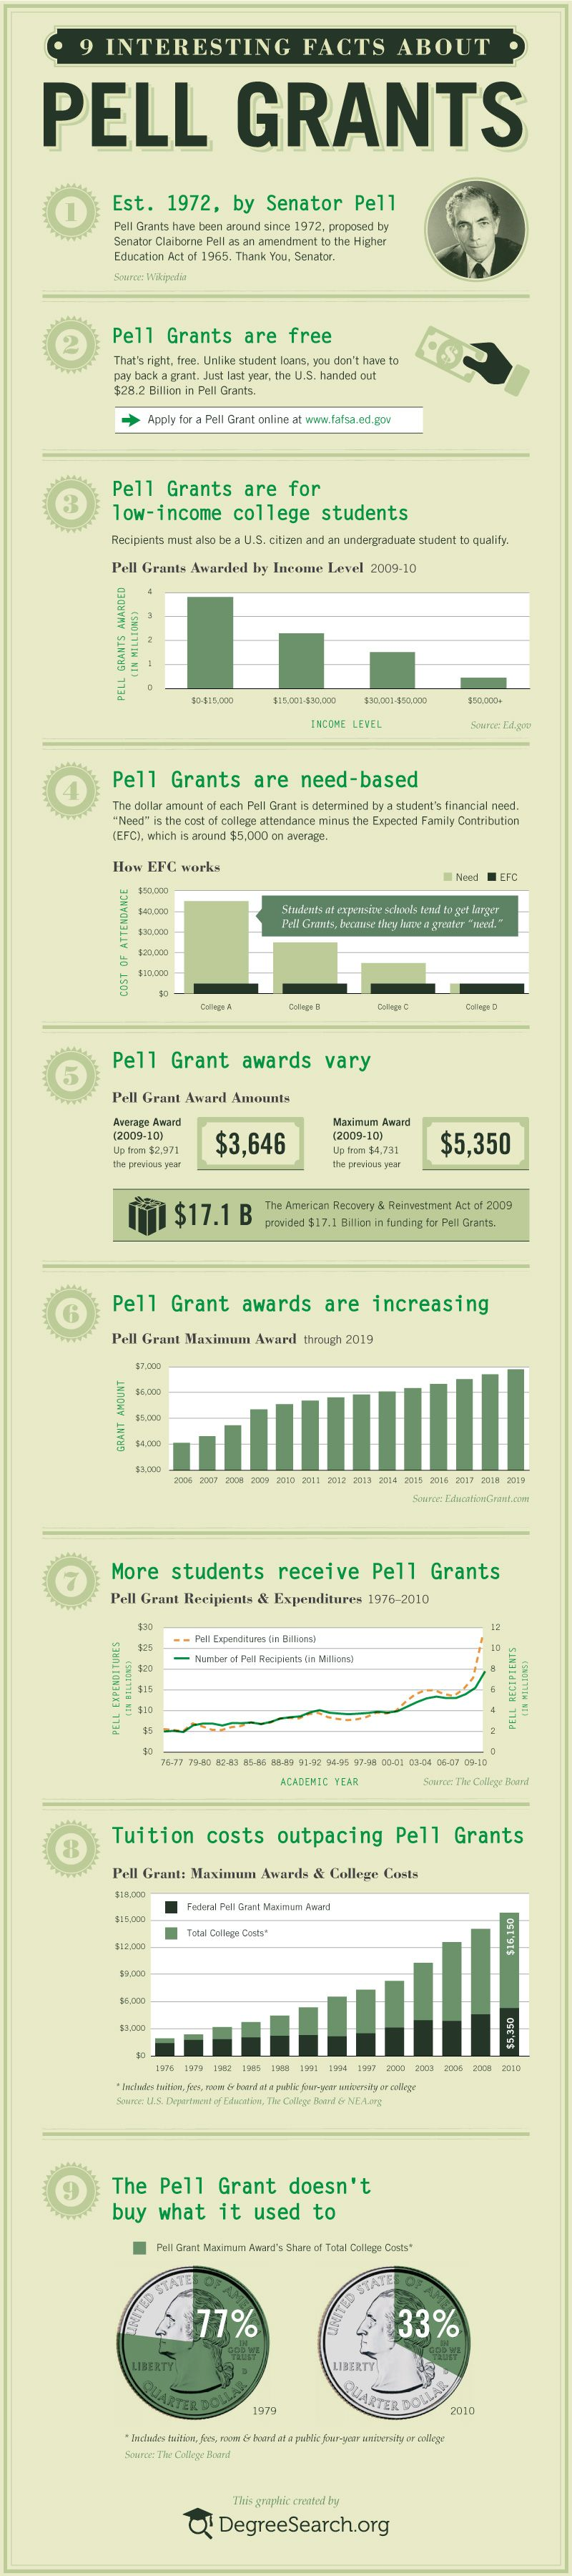 9 Interesting Facts About Pell Grants Visual Ly Scholarships For College Pell Grant Financial Aid For College